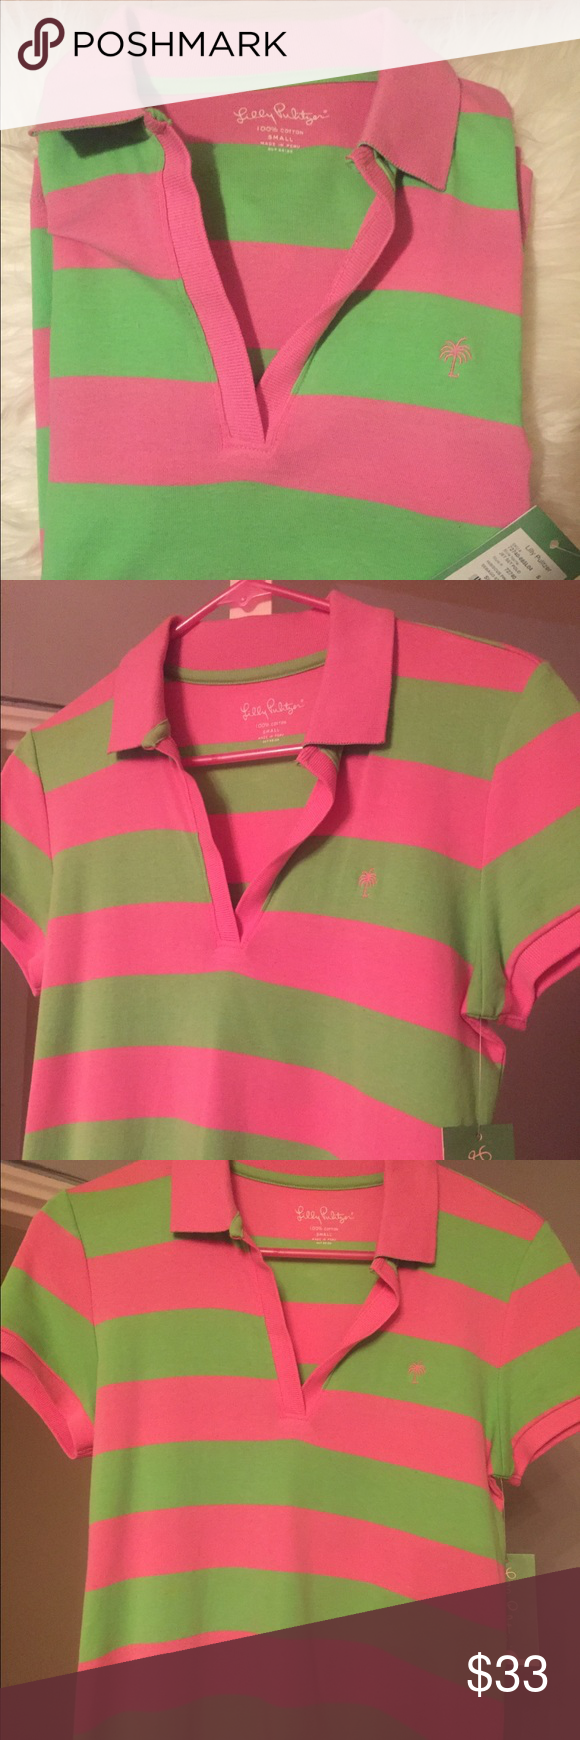 NWT!!! Lilly Pulitzer polo shirt Awesome jet set polo in great colors, pink and green. Short sleeve collared v neck with brand logo embroidered on the front. Would look good paired with just about anything: shorts, denim, or even a skirt. Would make a great addition to your closet! Lilly Pulitzer Tops Tees - Short Sleeve